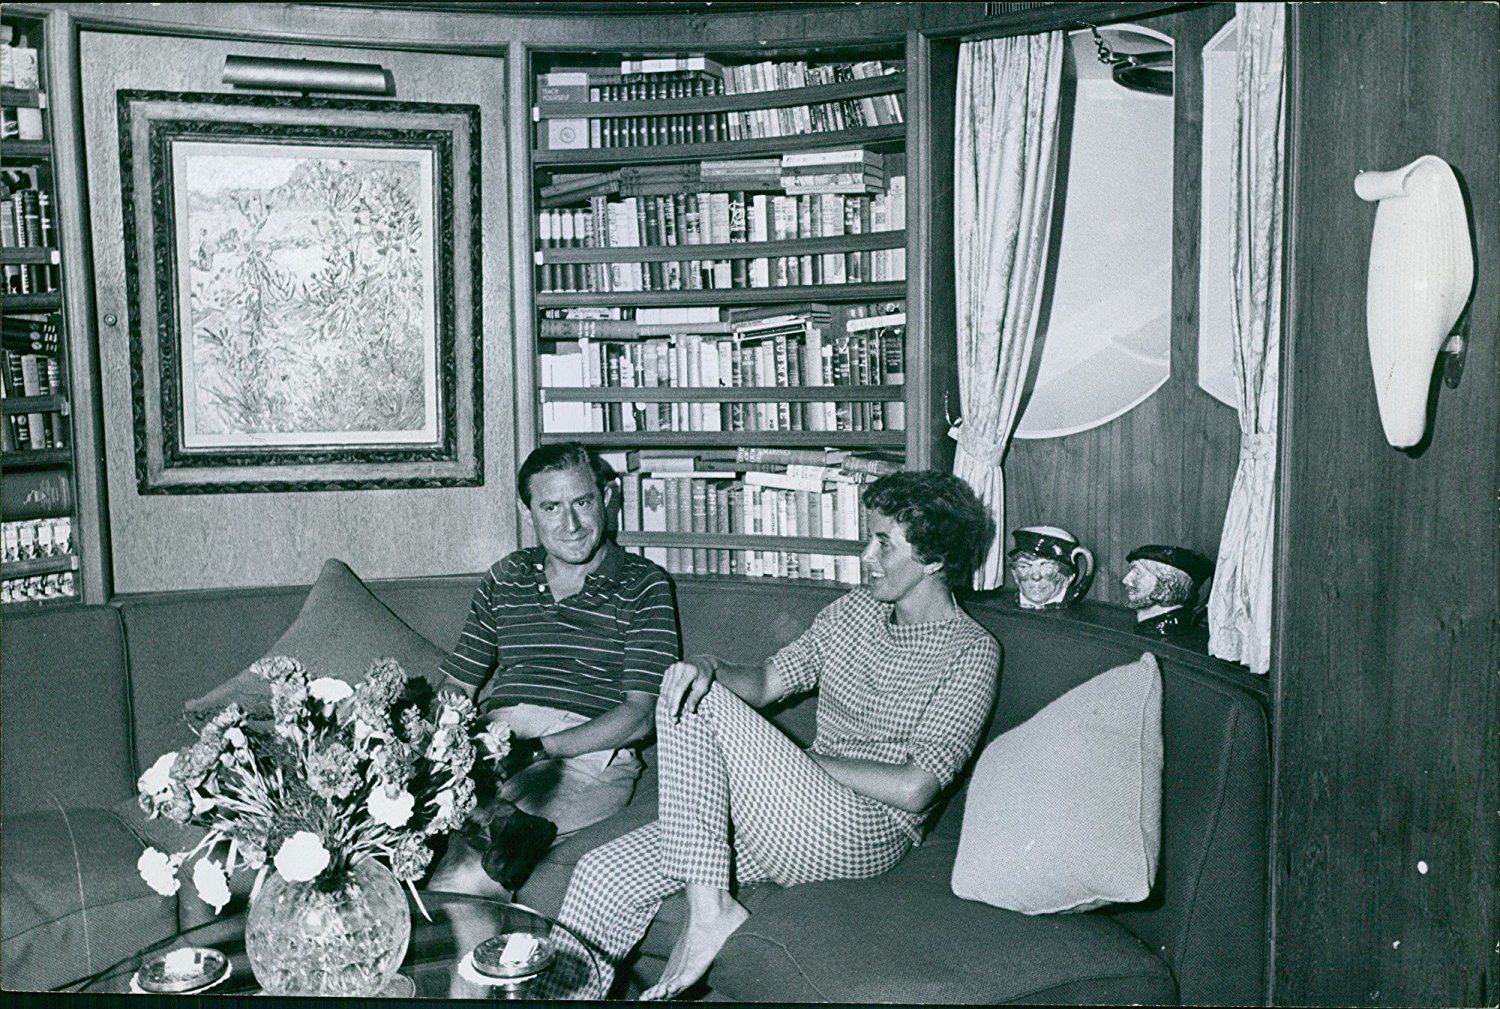 EVGENIA GL Stavros Niarchos sitting on the couch with Eugenia ...